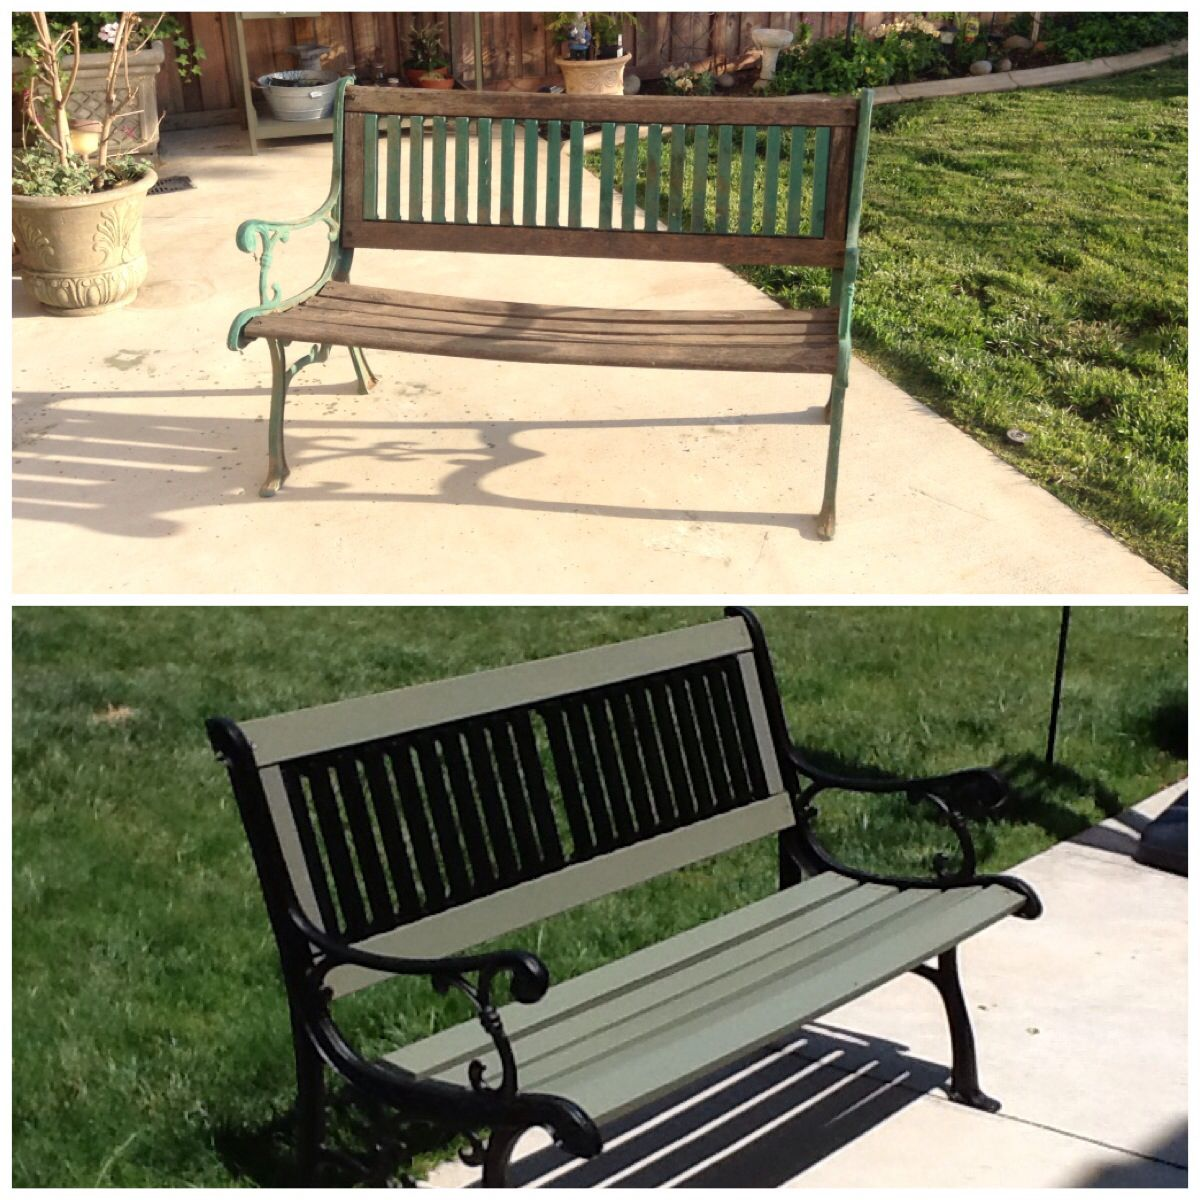 Refurbished Old Garden Bench Repainted The Rod Iron My 400 x 300